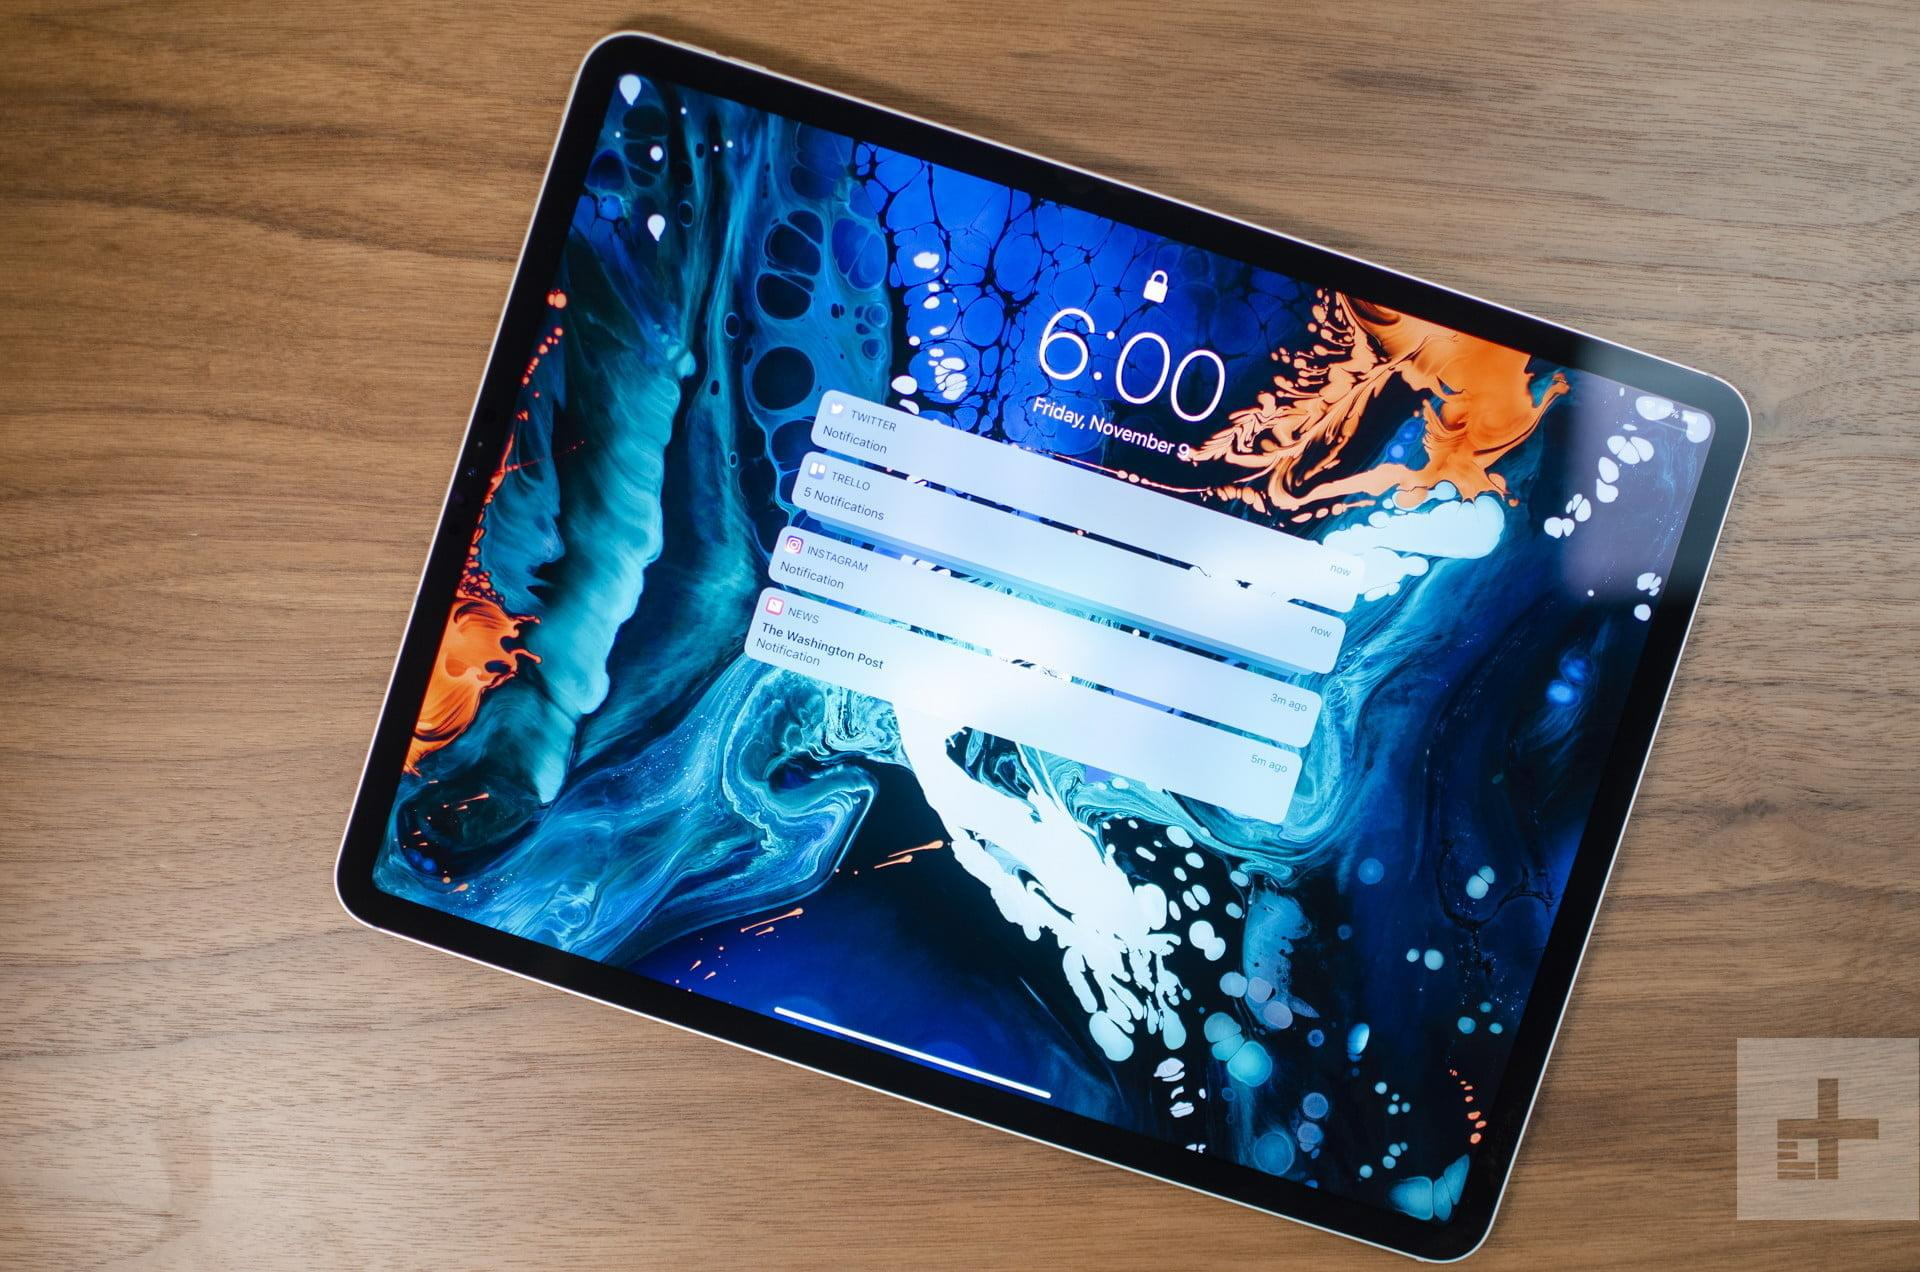 The best iPad Pro tips and tricks